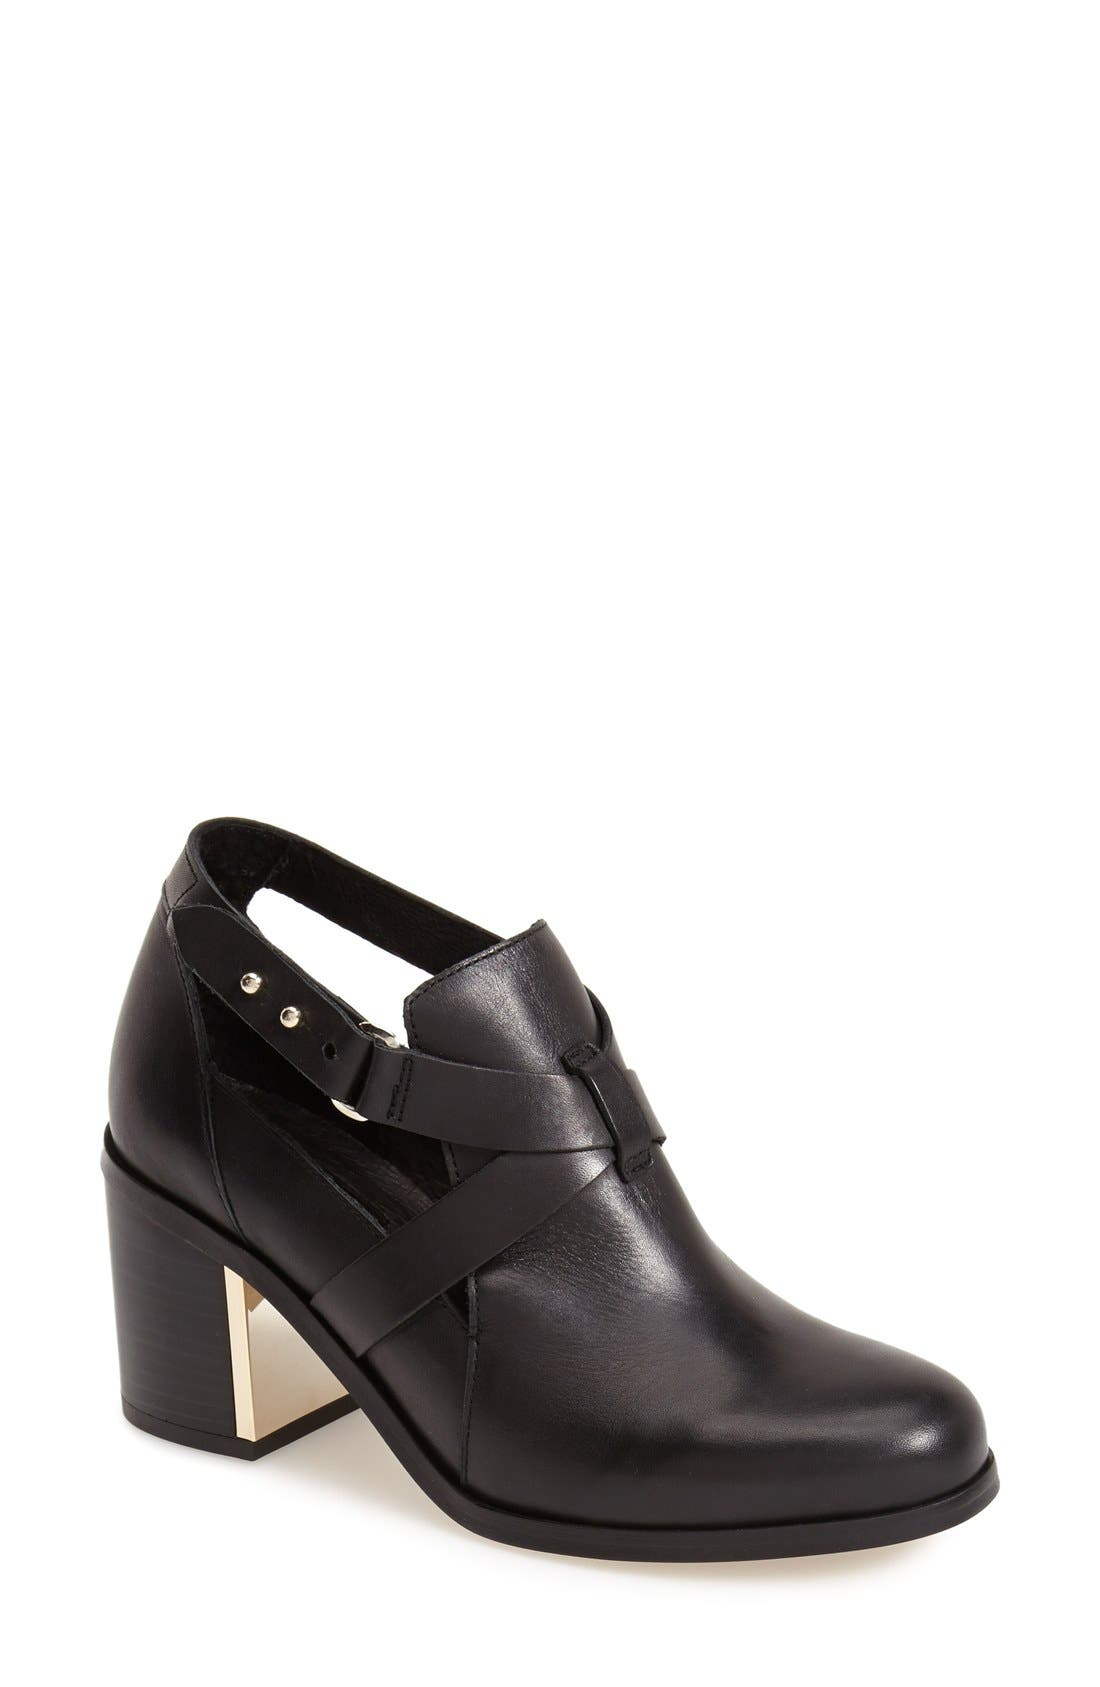 Alternate Image 1 Selected - Topshop 'Mirror' Crisscross Strap Leather Ankle Boot (Women)